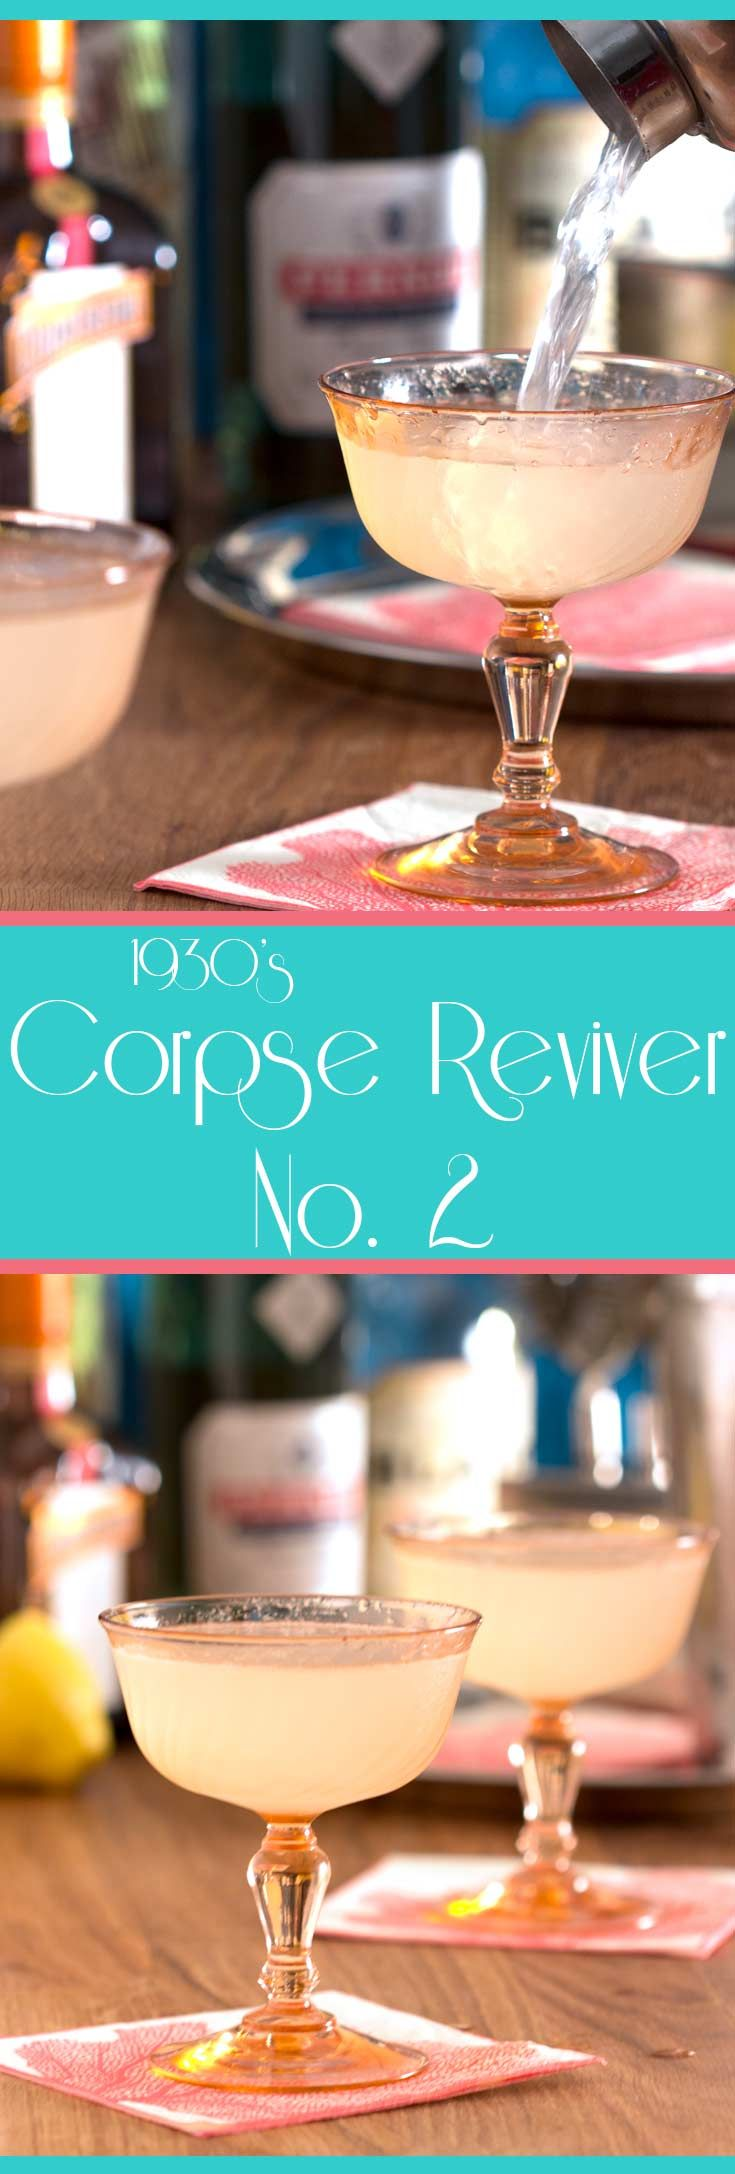 Corpse Reviver No. 2 - A vintage cocktail that is delightfully refreshing, slightly sweet yet tart, with lovely notes of citrus. #zestyrecipe #vintagerecipe